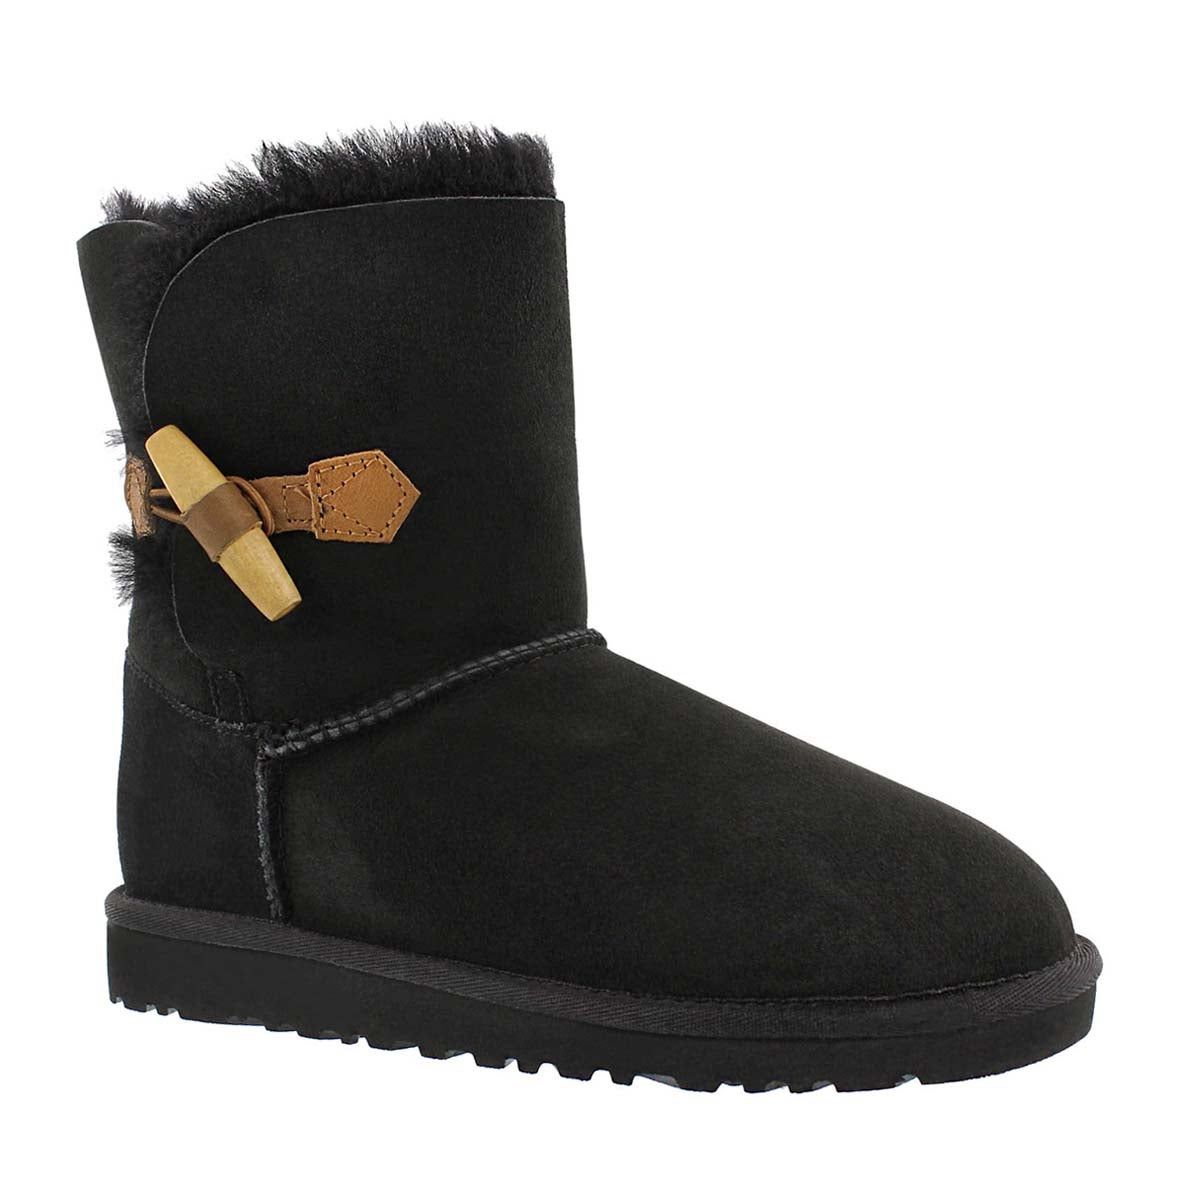 Grls Ebony black sheepskin toggle boot